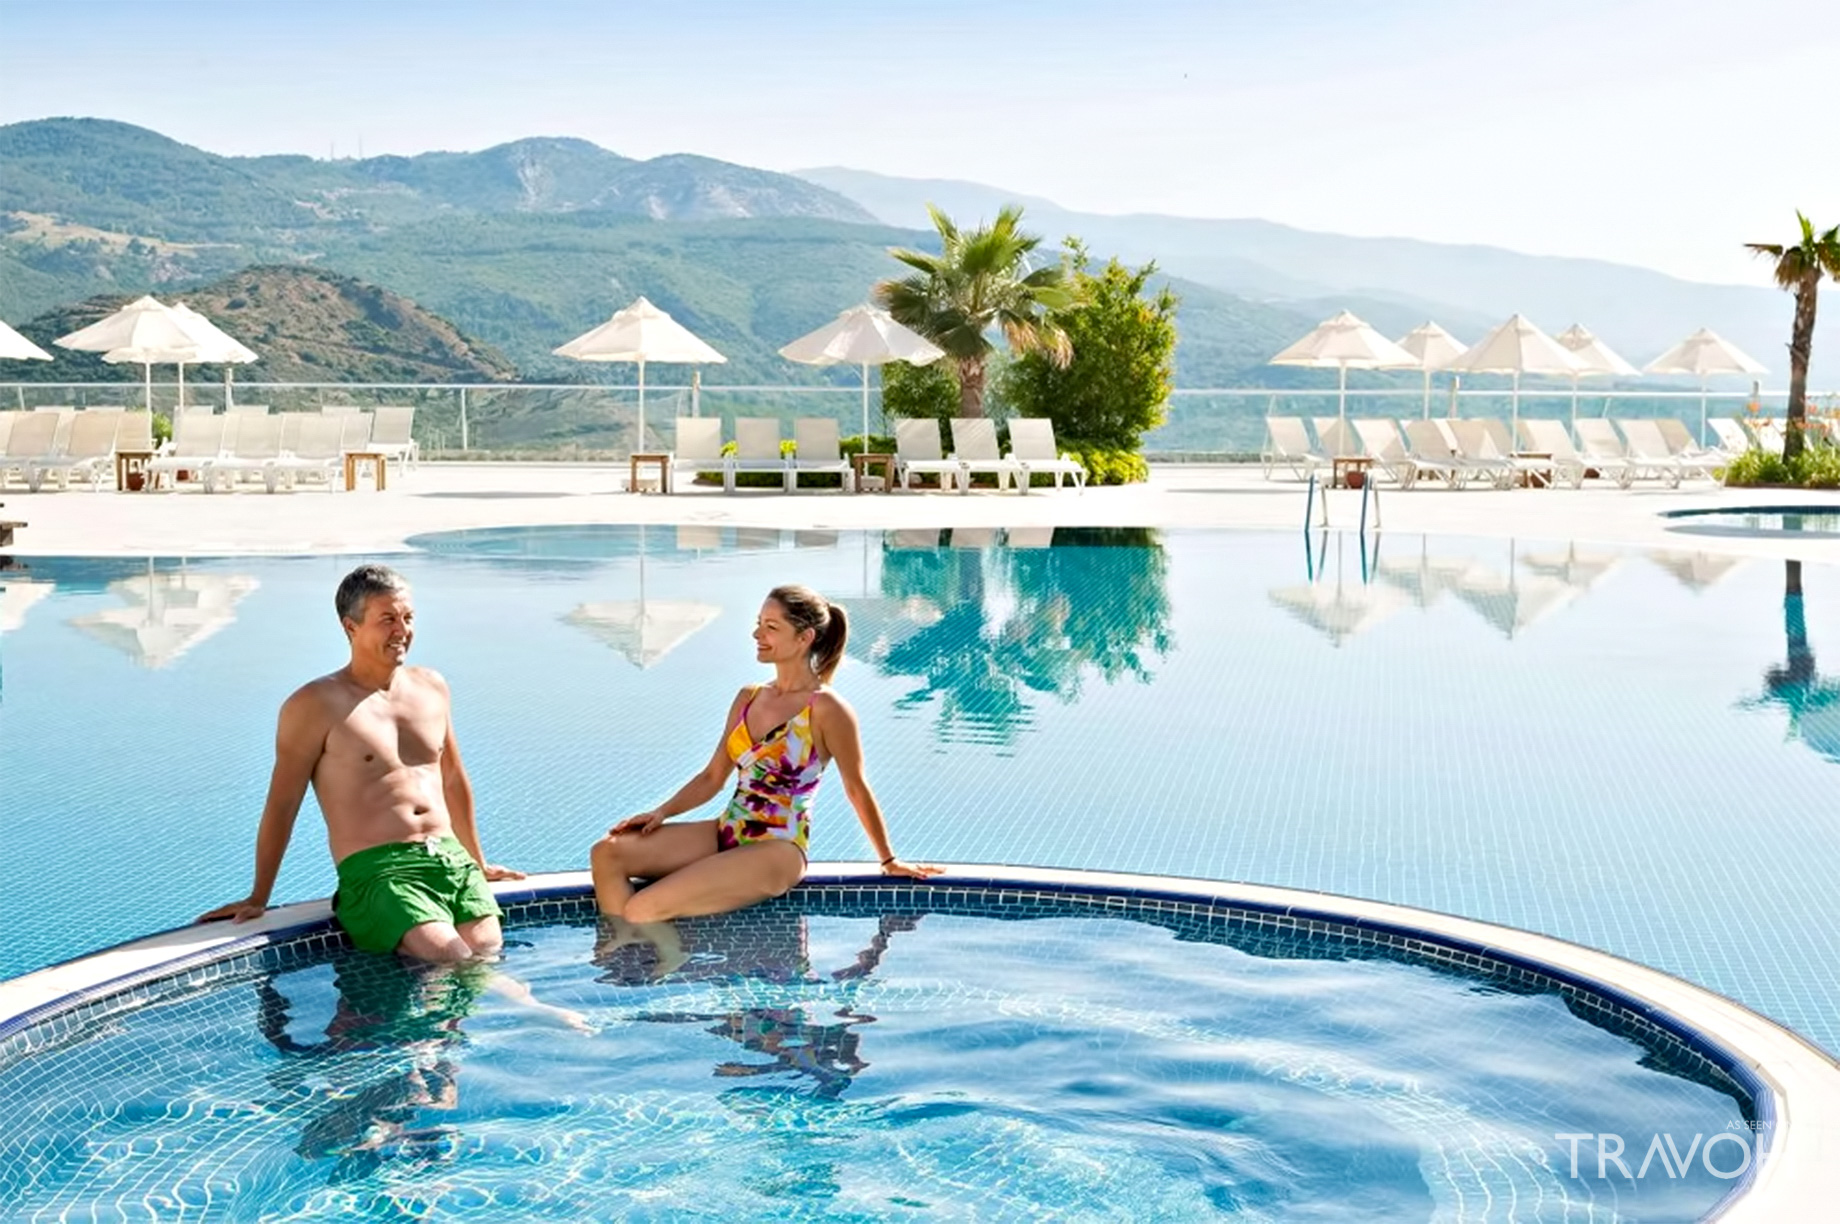 CLC World Turkey - Kusadasi Golf and Spa Resort - Self-Contained Bliss